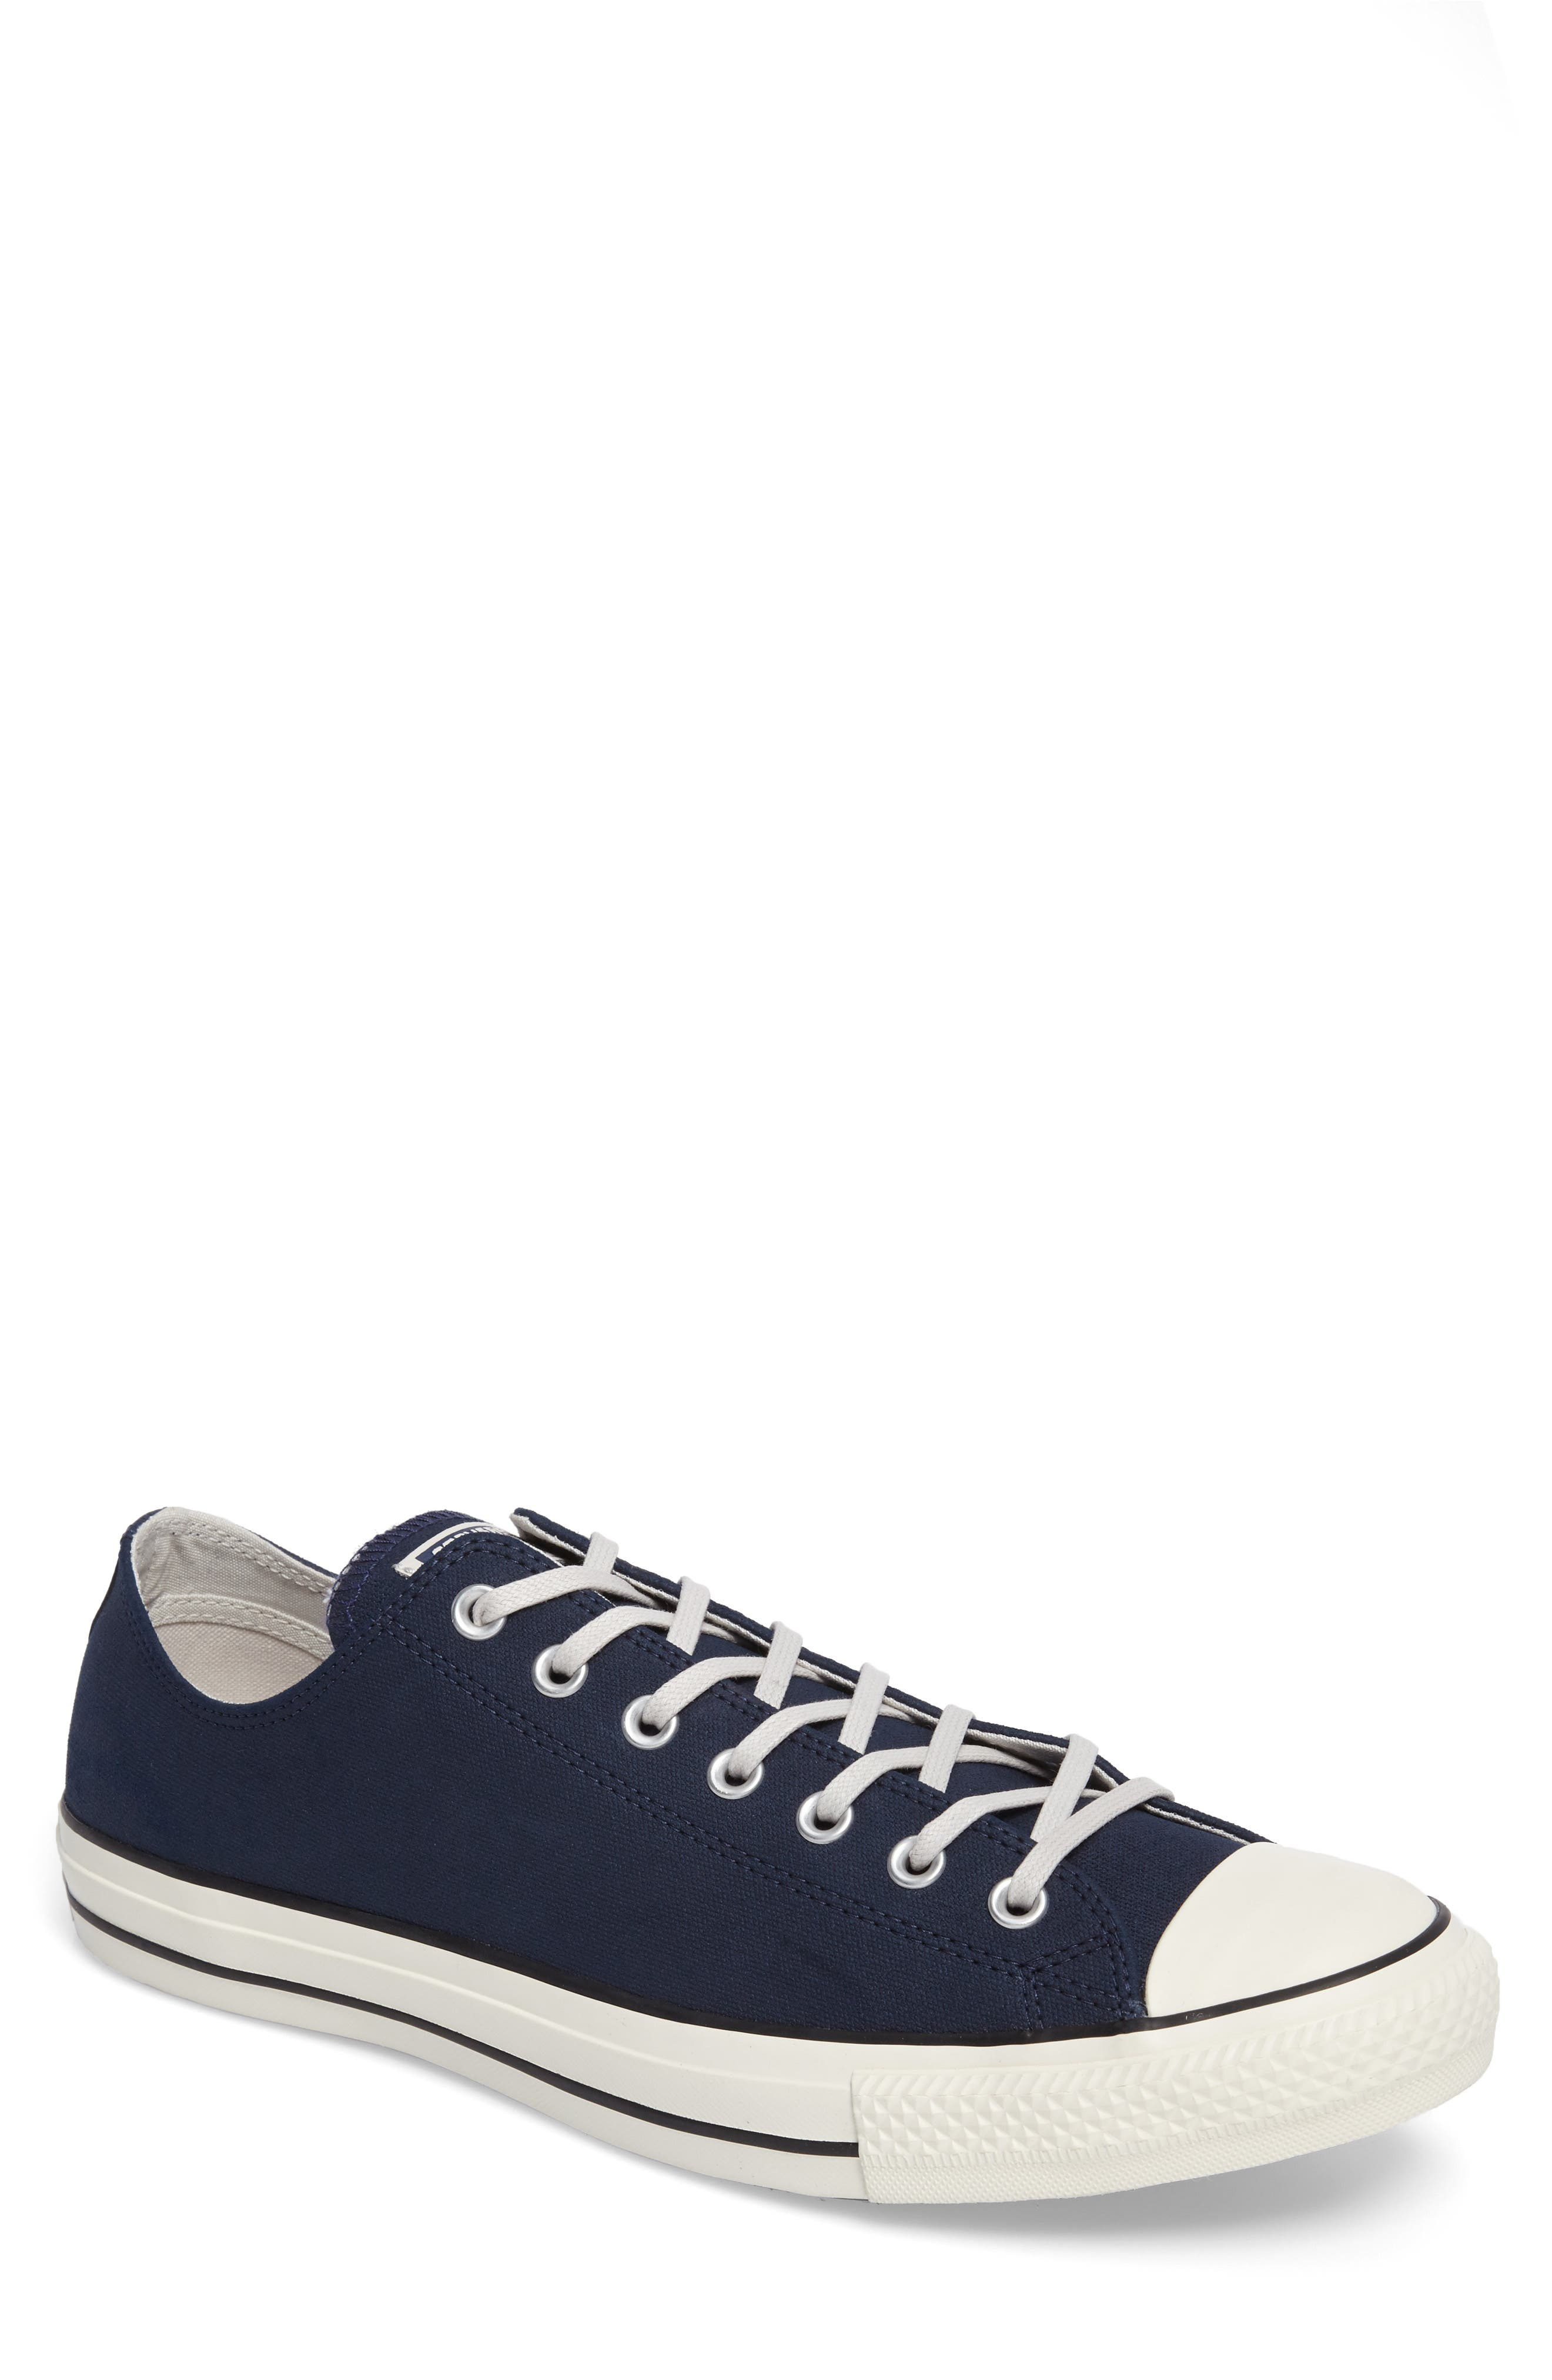 Chuck Taylor<sup>®</sup> All Star<sup>®</sup> Low Top Sneaker,                         Main,                         color, 471